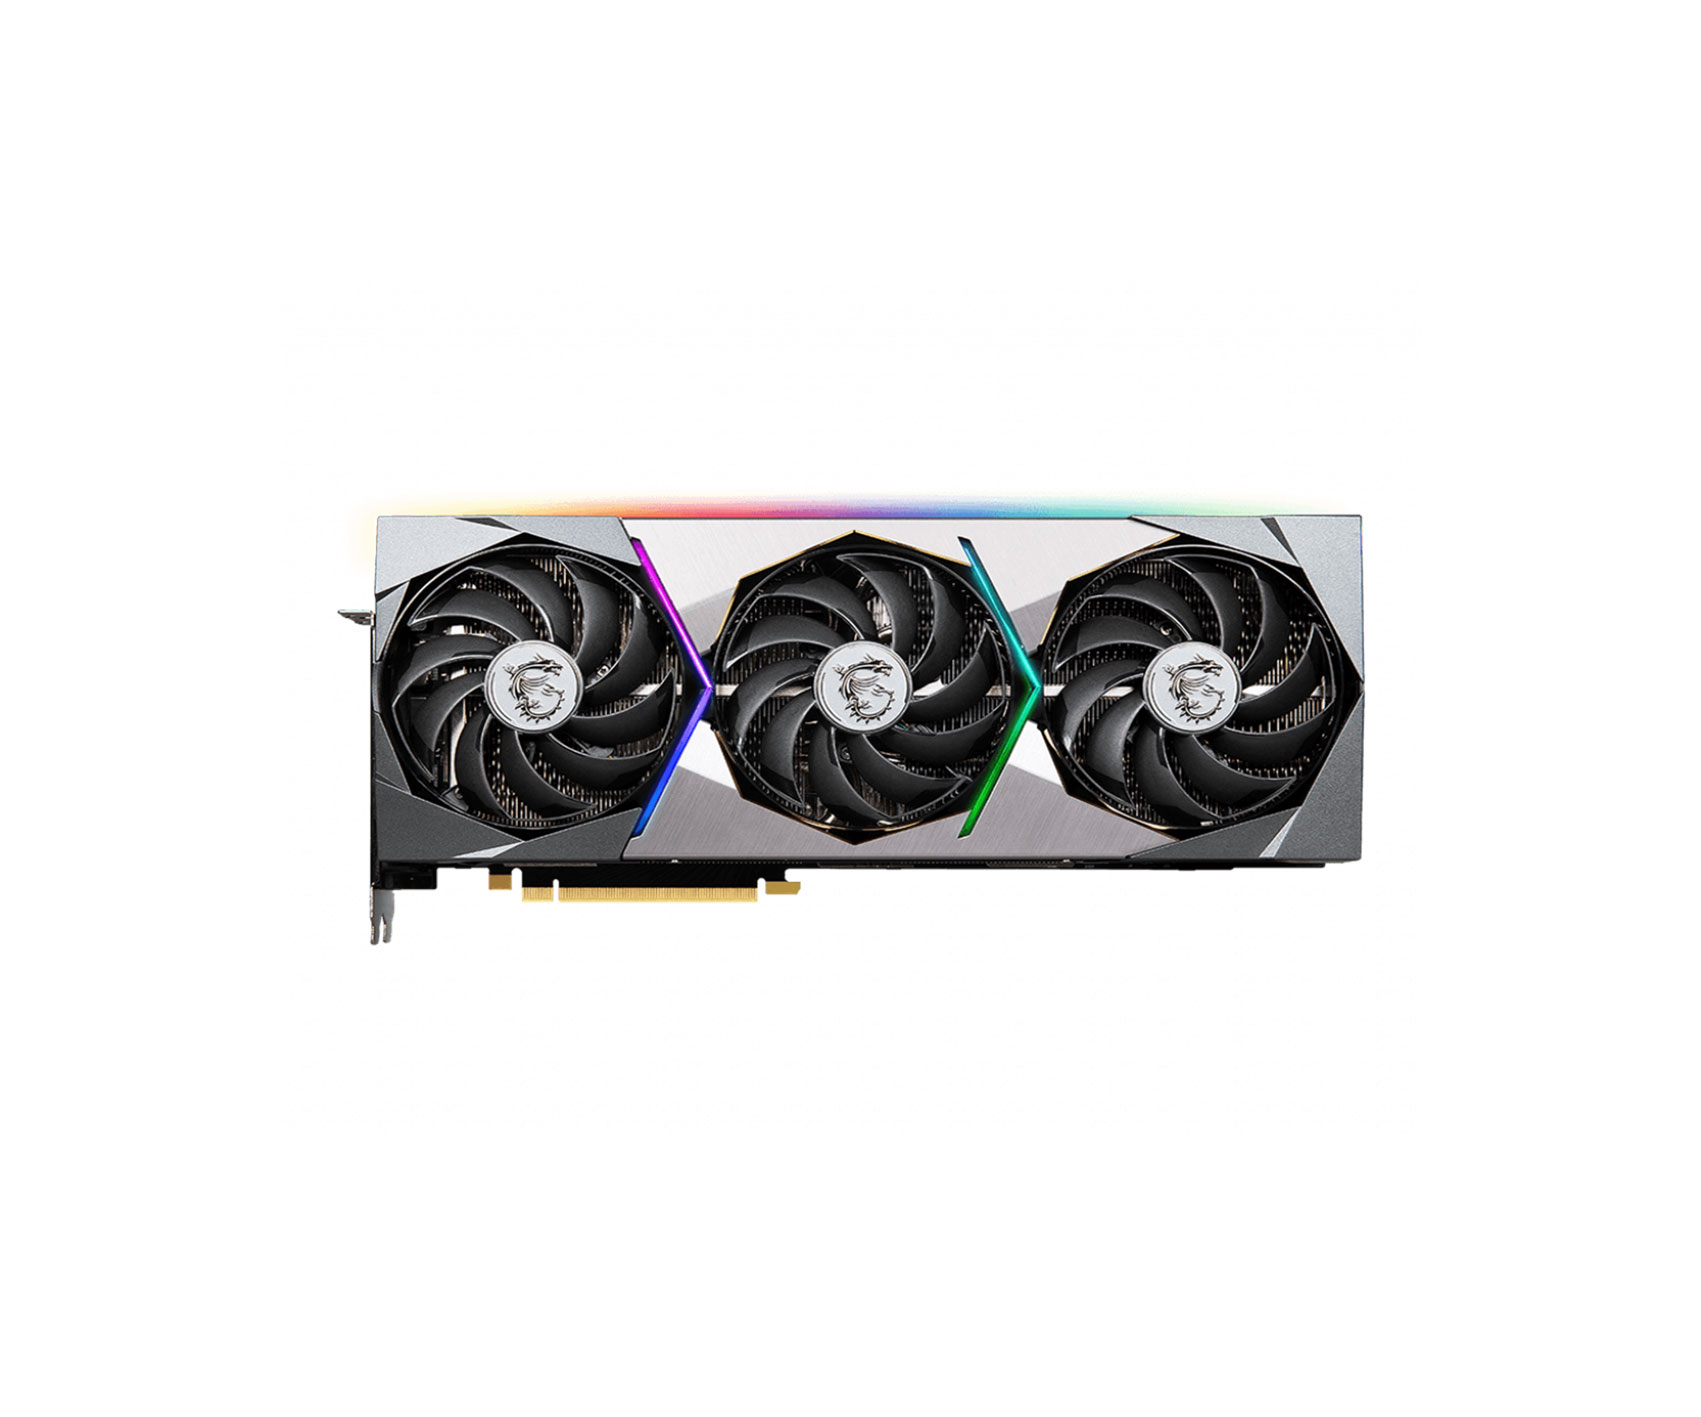 MSI GEFORCE RTX 3080 SUPRIM X 10GB 320-BIT GDDR6X Graphic Card